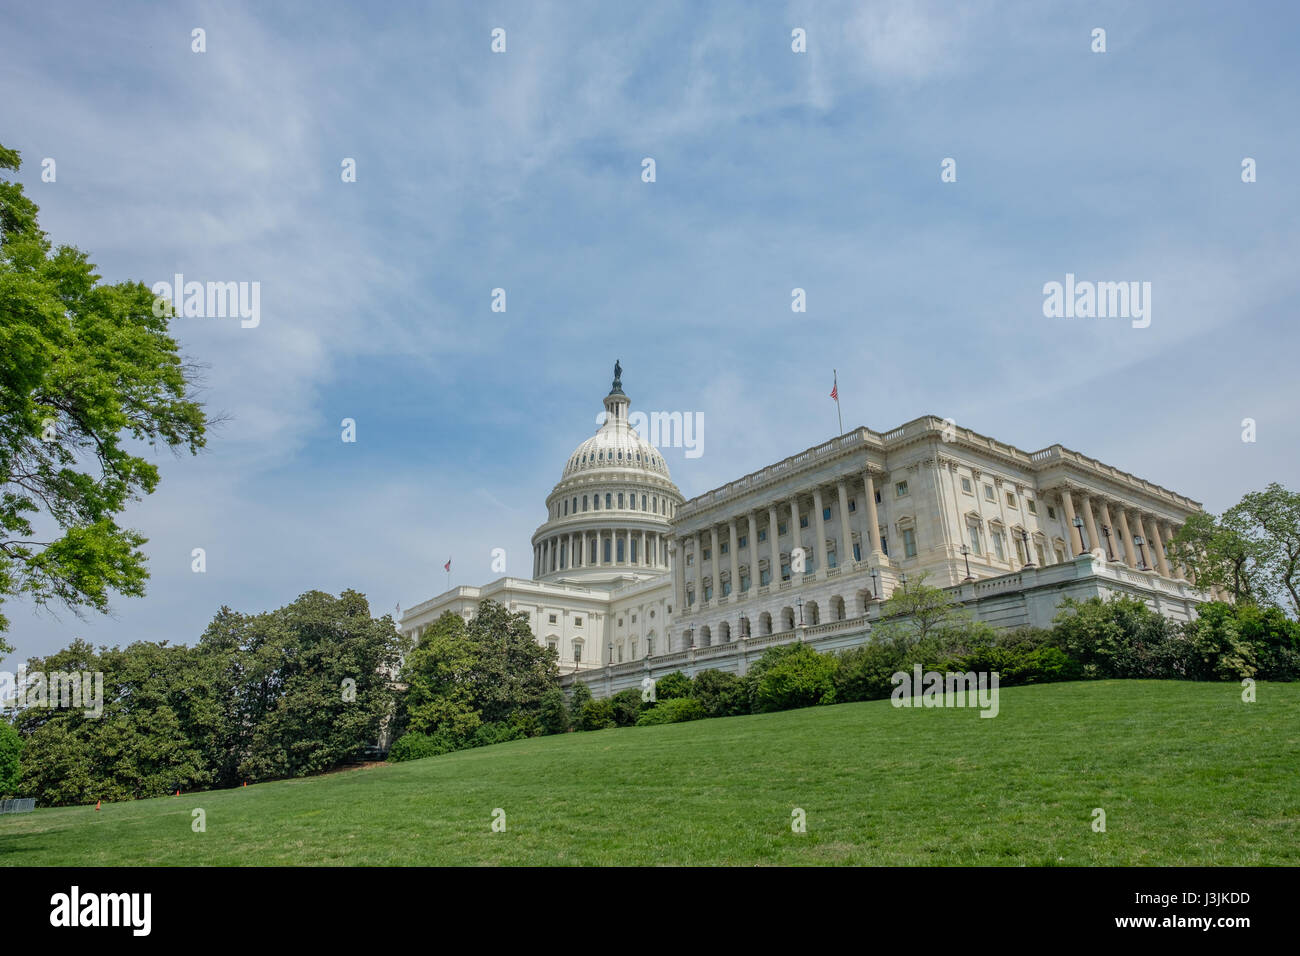 U.S. Capitol Building and Lawn - Stock Image